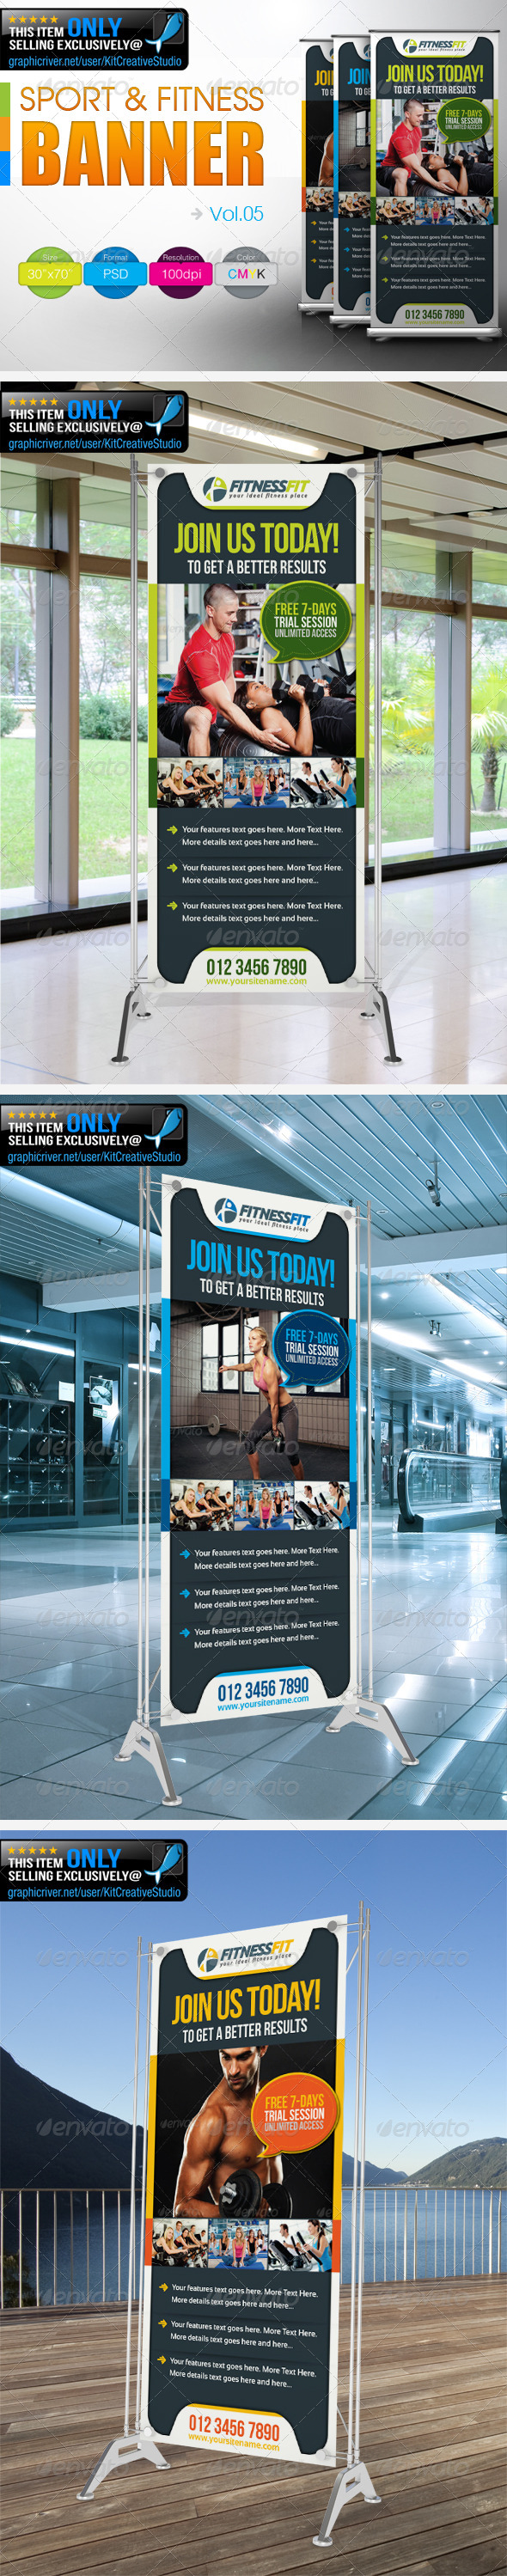 Fitness Banner Vol.5 - Signage Print Templates